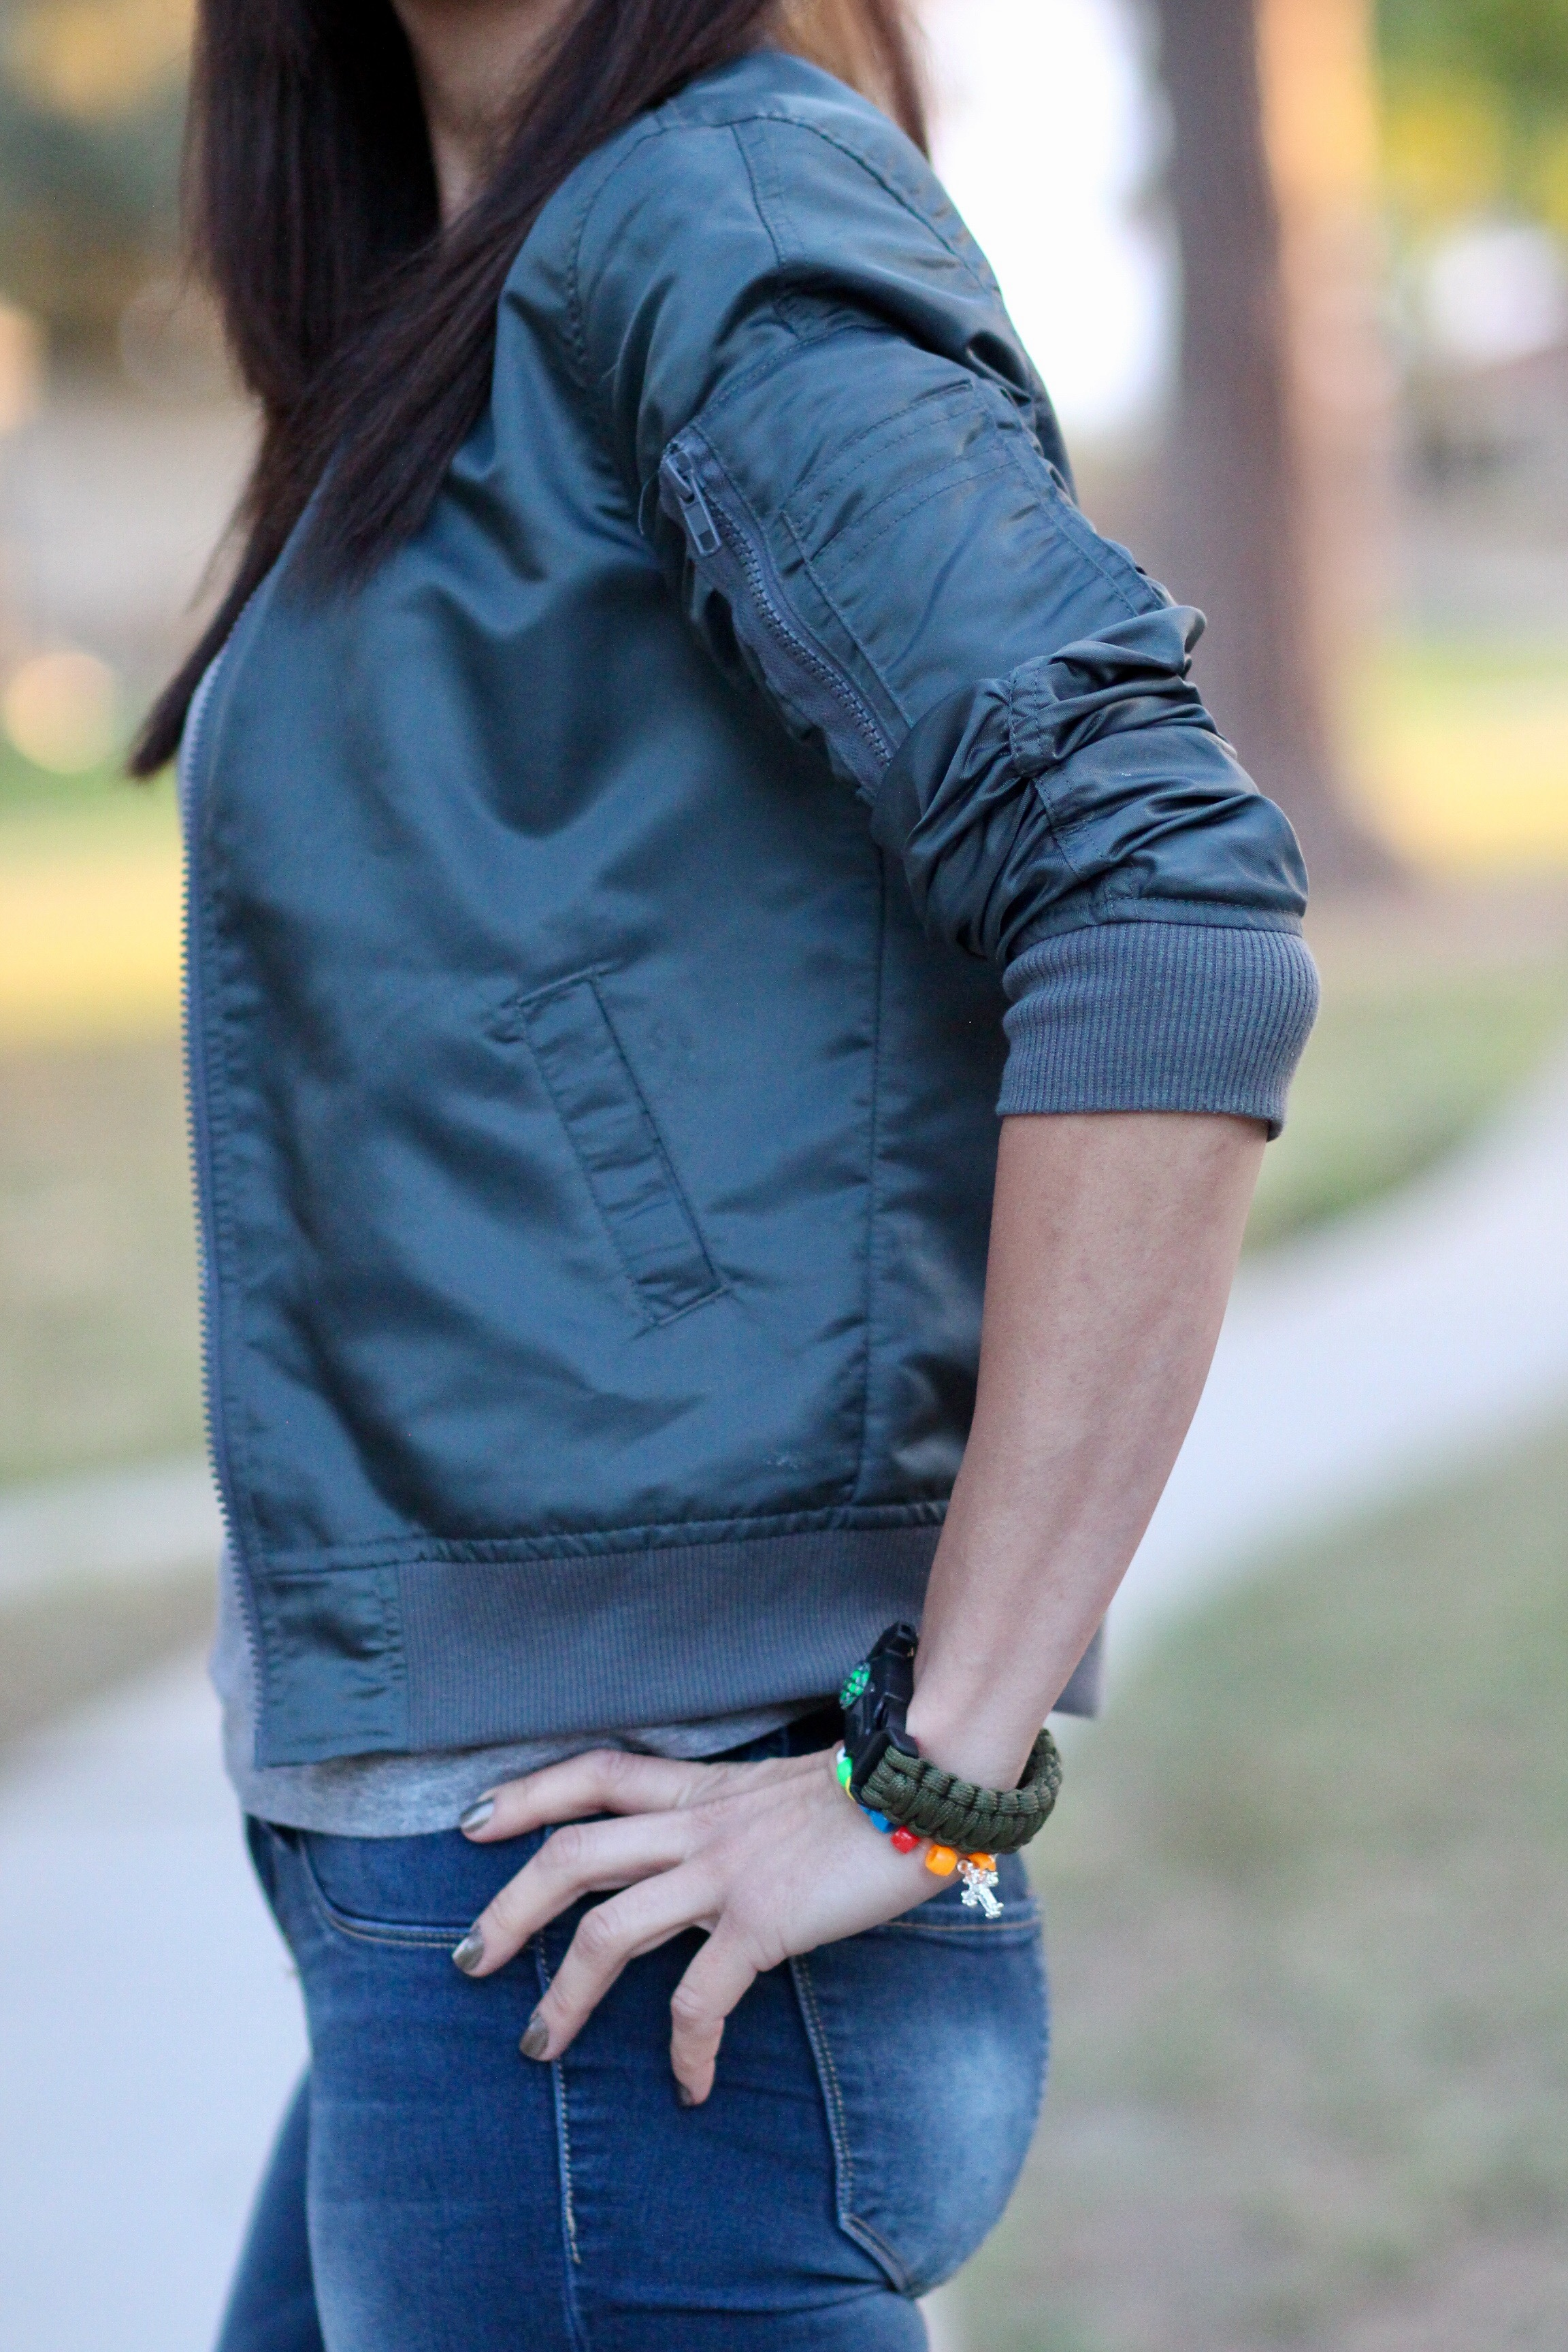 Bomber jacket with sleeve zipper detail and compass watch